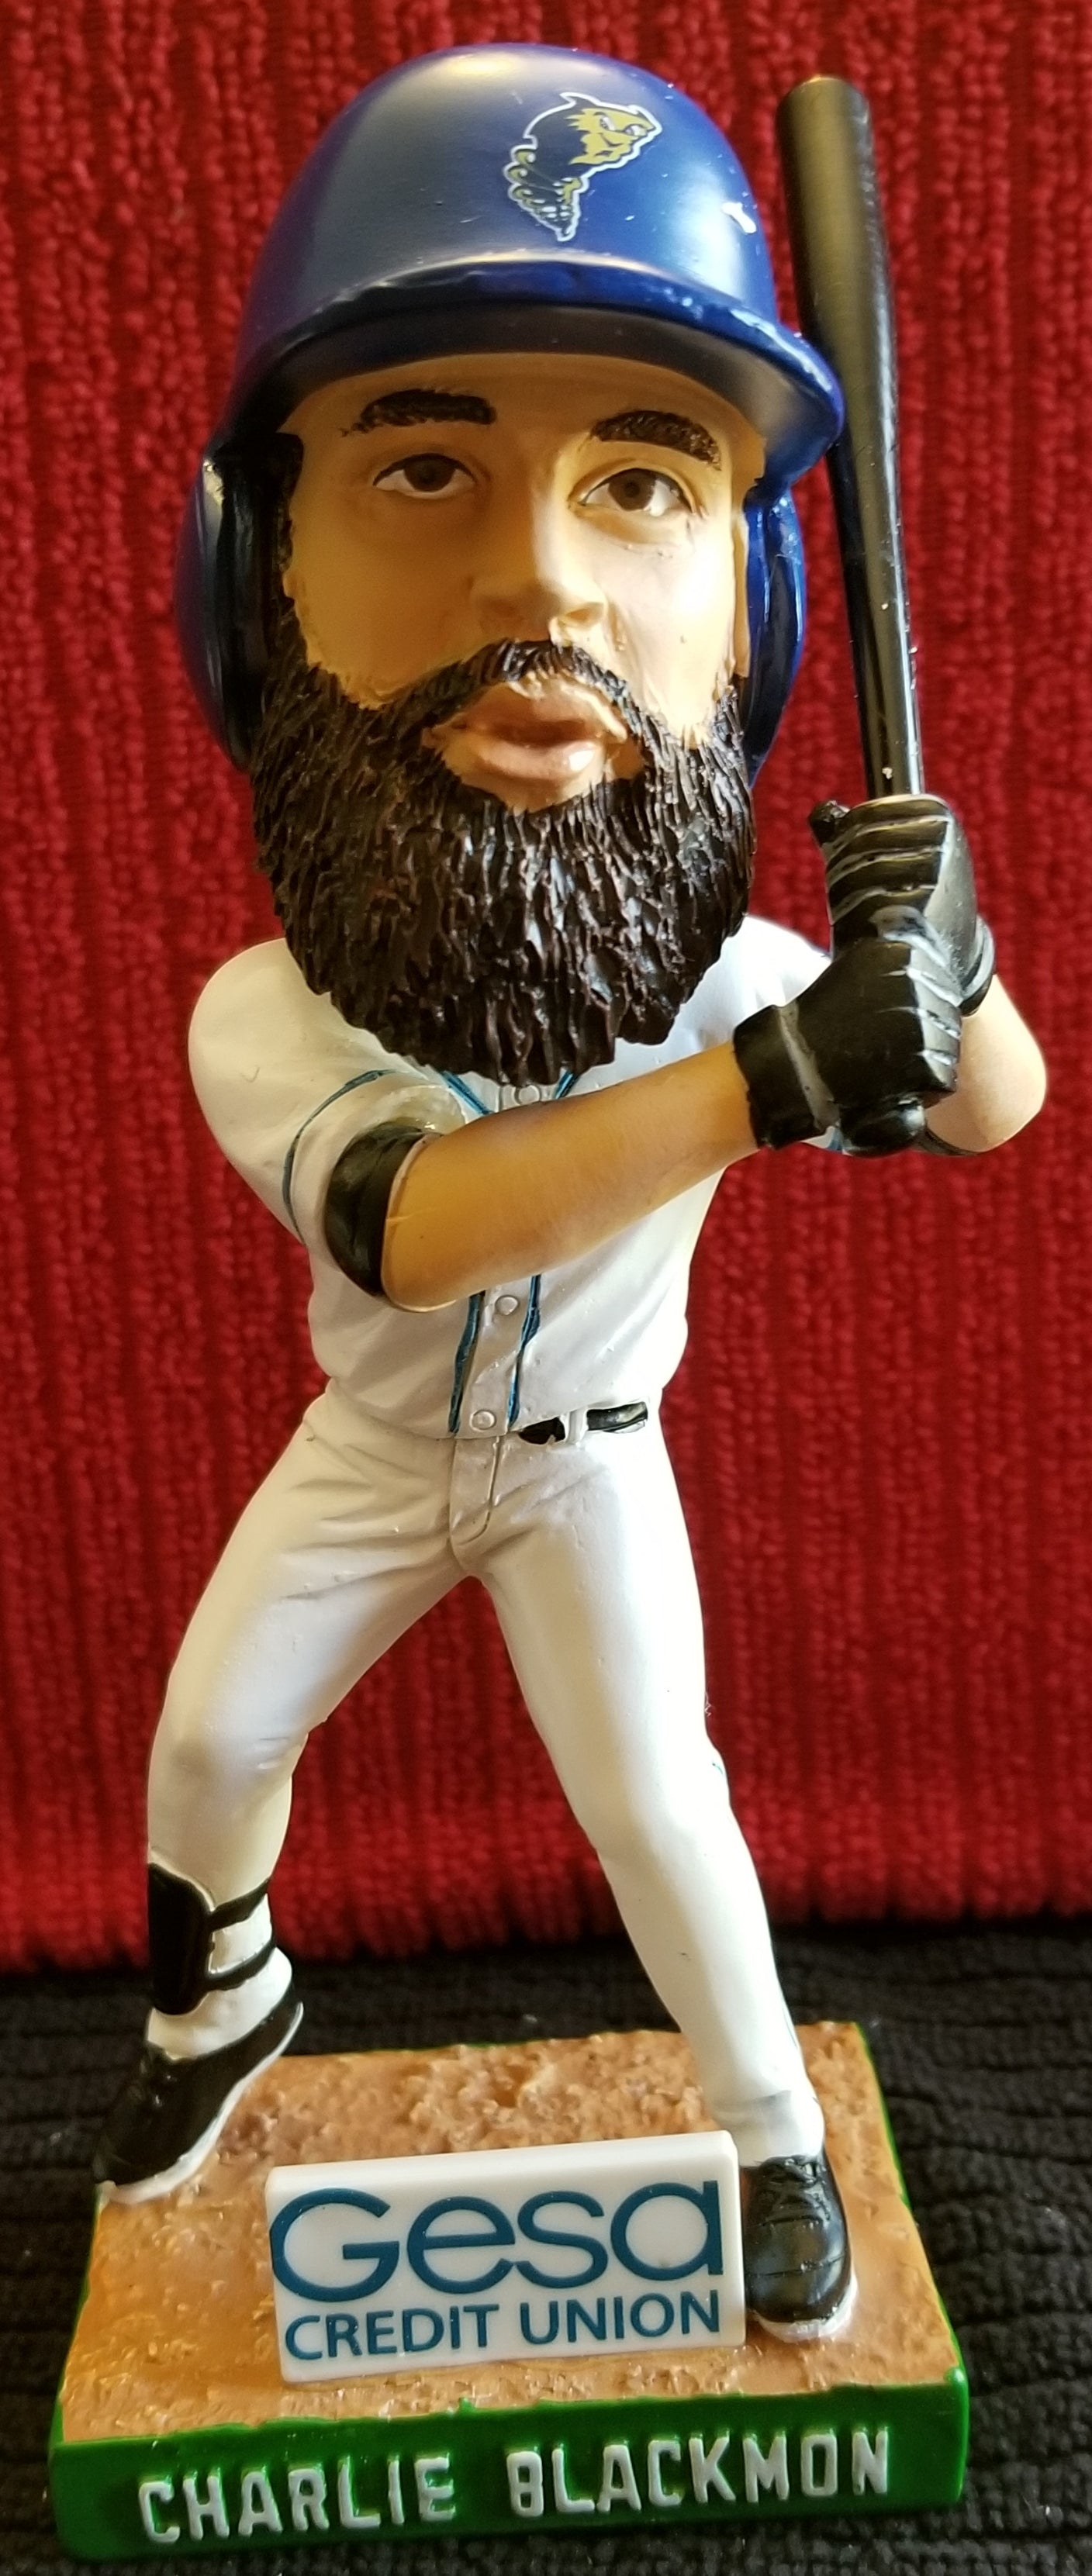 Charlie Blackmon #16 2018 Tri-City Dust Devils sponsored (SGA) Bobblehead